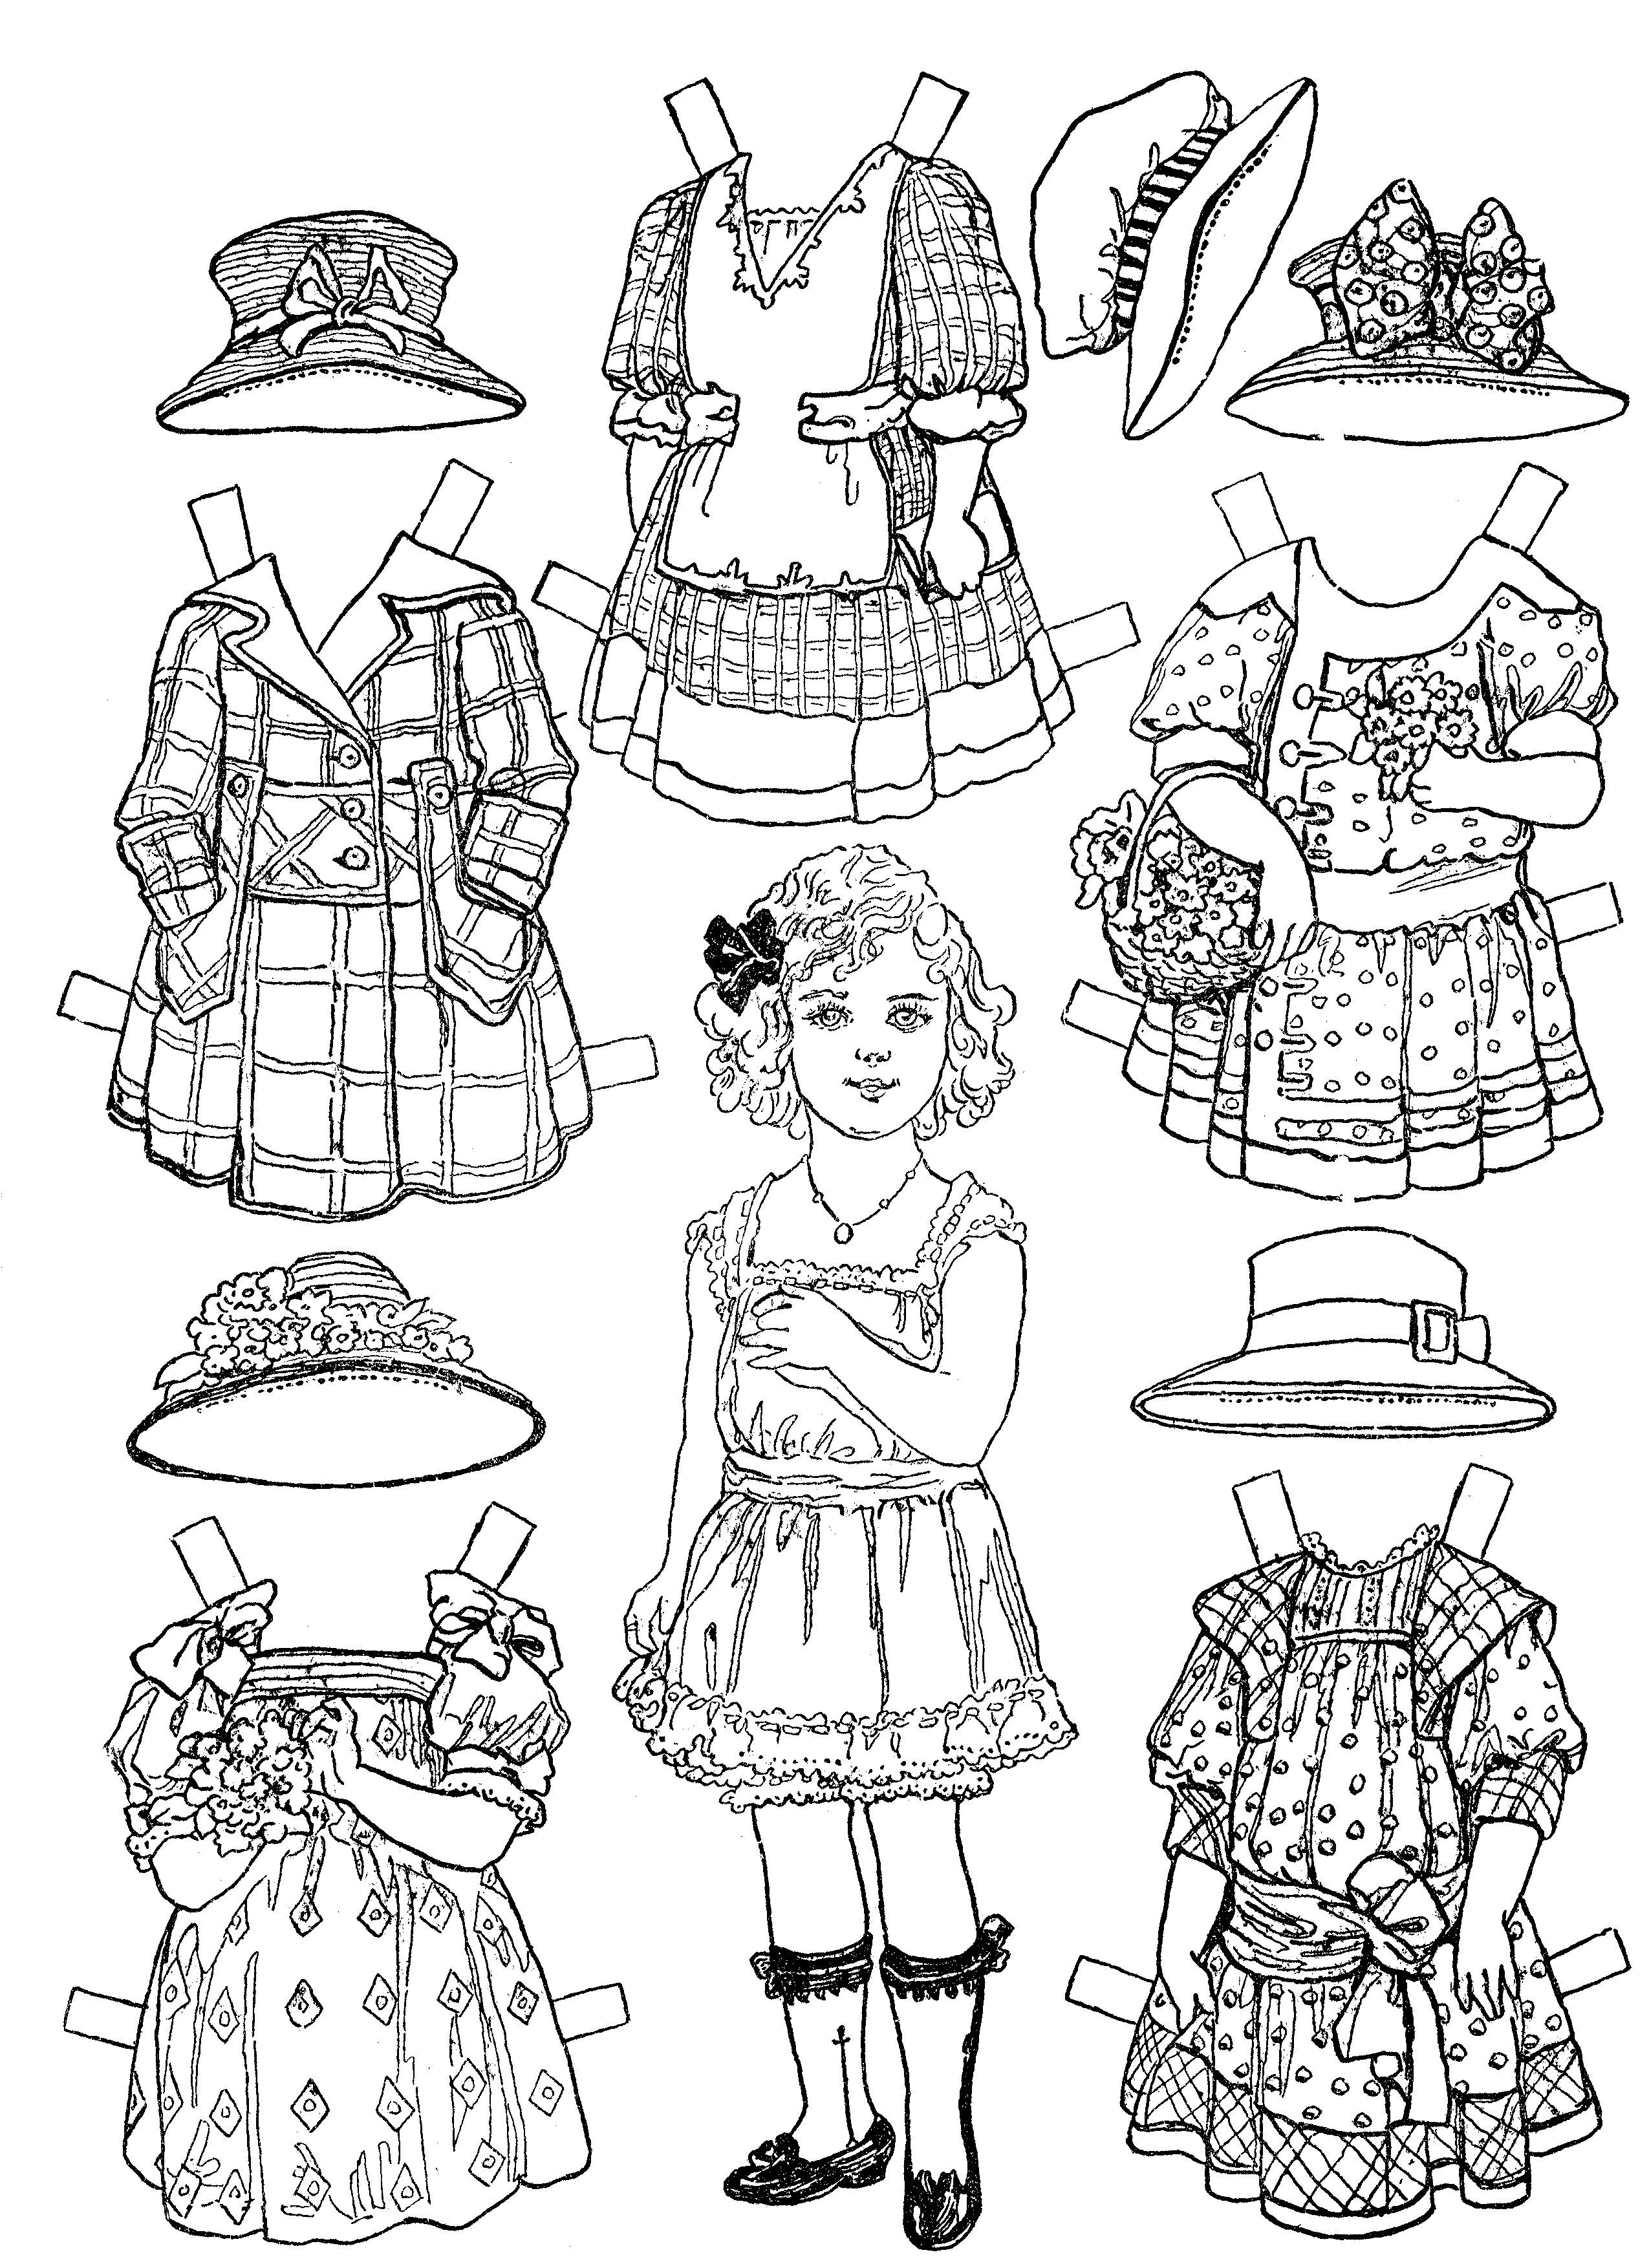 dress up dolls printable paper dolls and paper doll dresses printable from kid dress dolls up printable